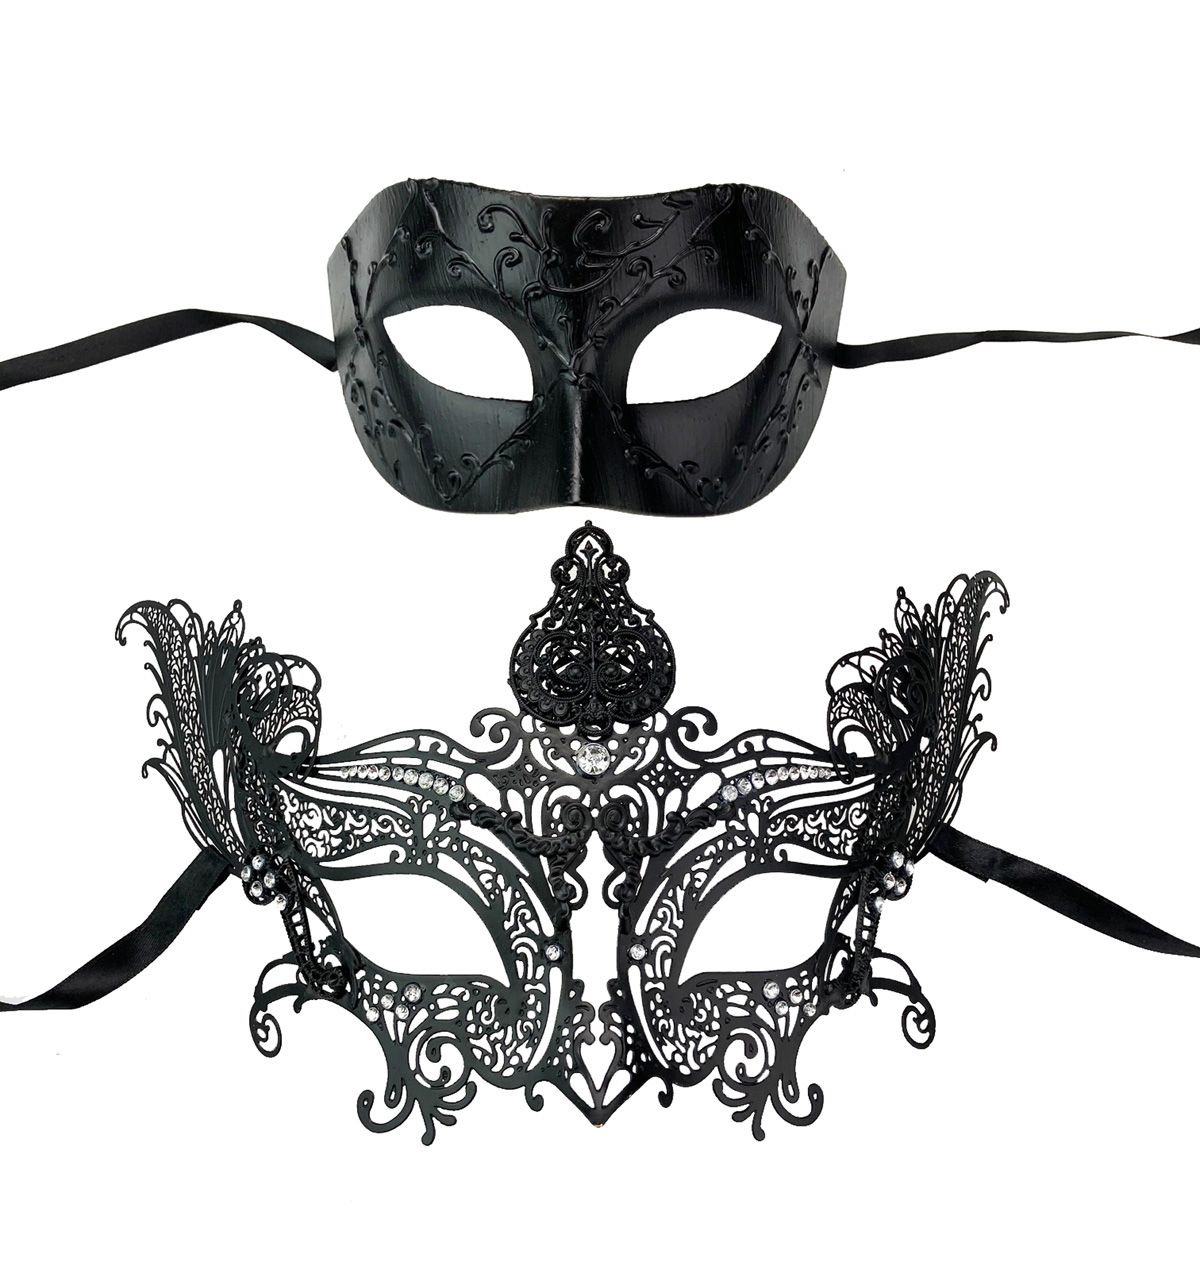 Couples Masquerade Eye Mask Set His & Hers Set Couples Prom Party Set